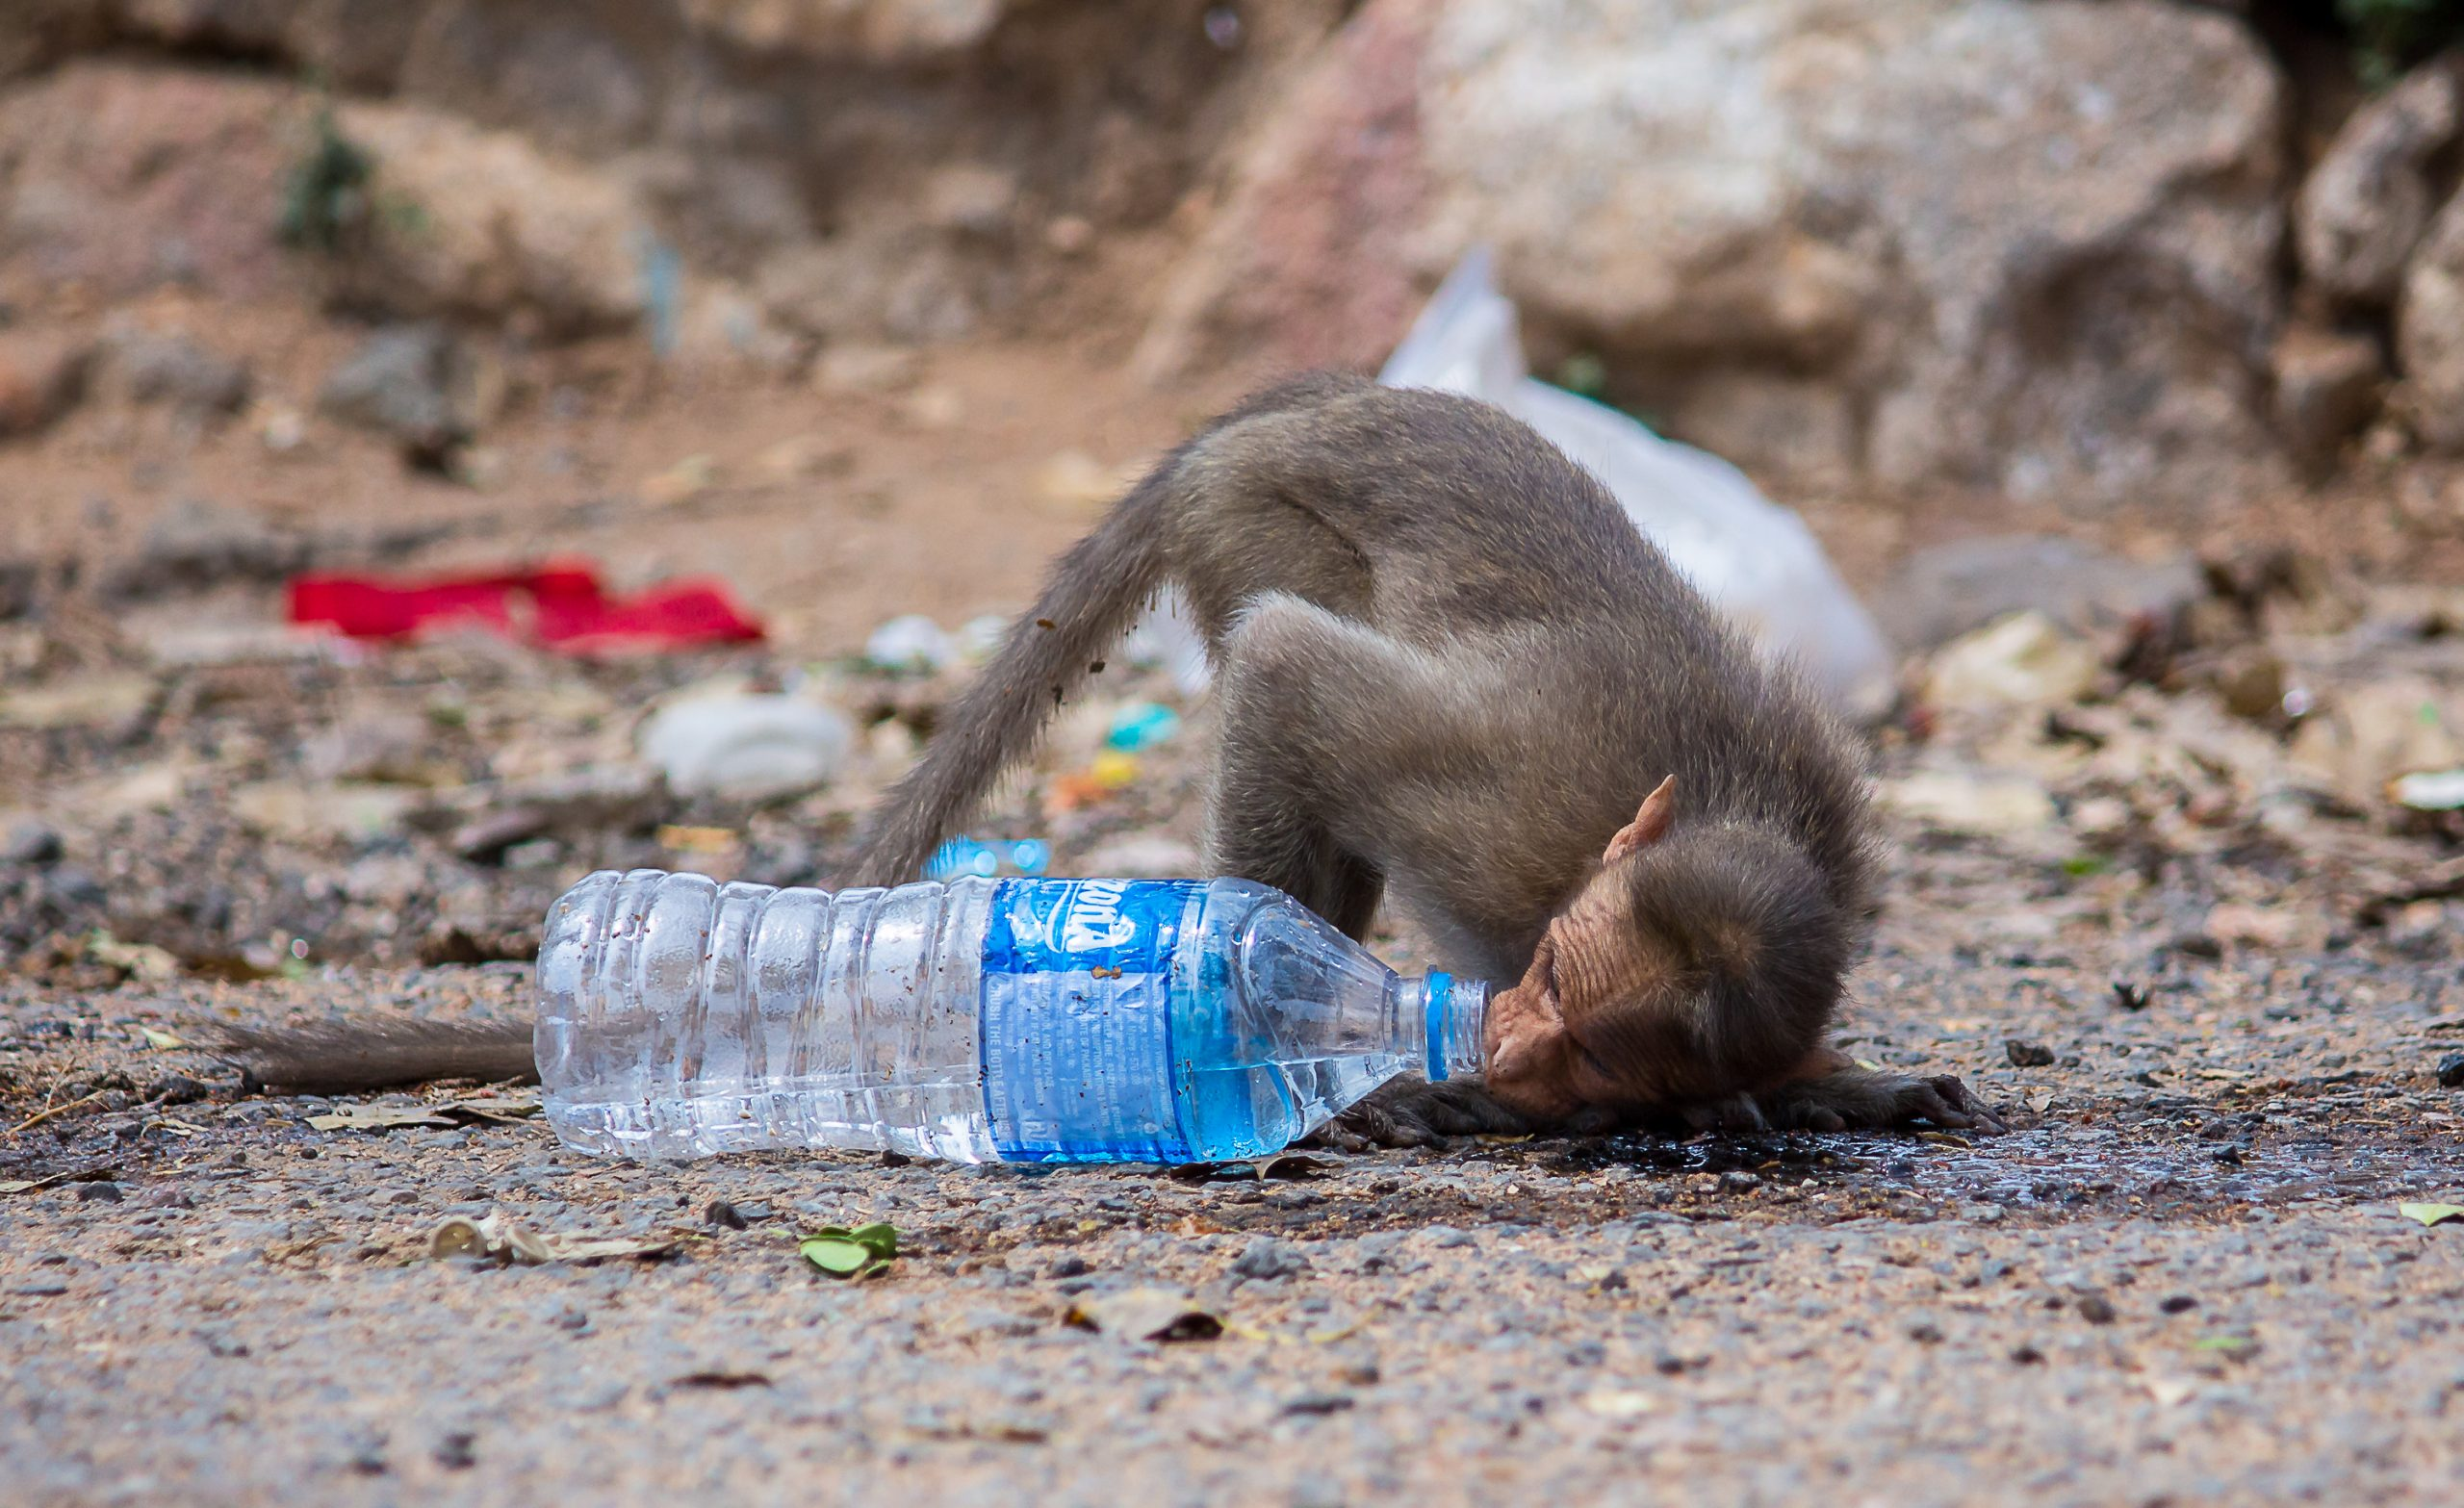 Monkey Drinking Water from the bottle